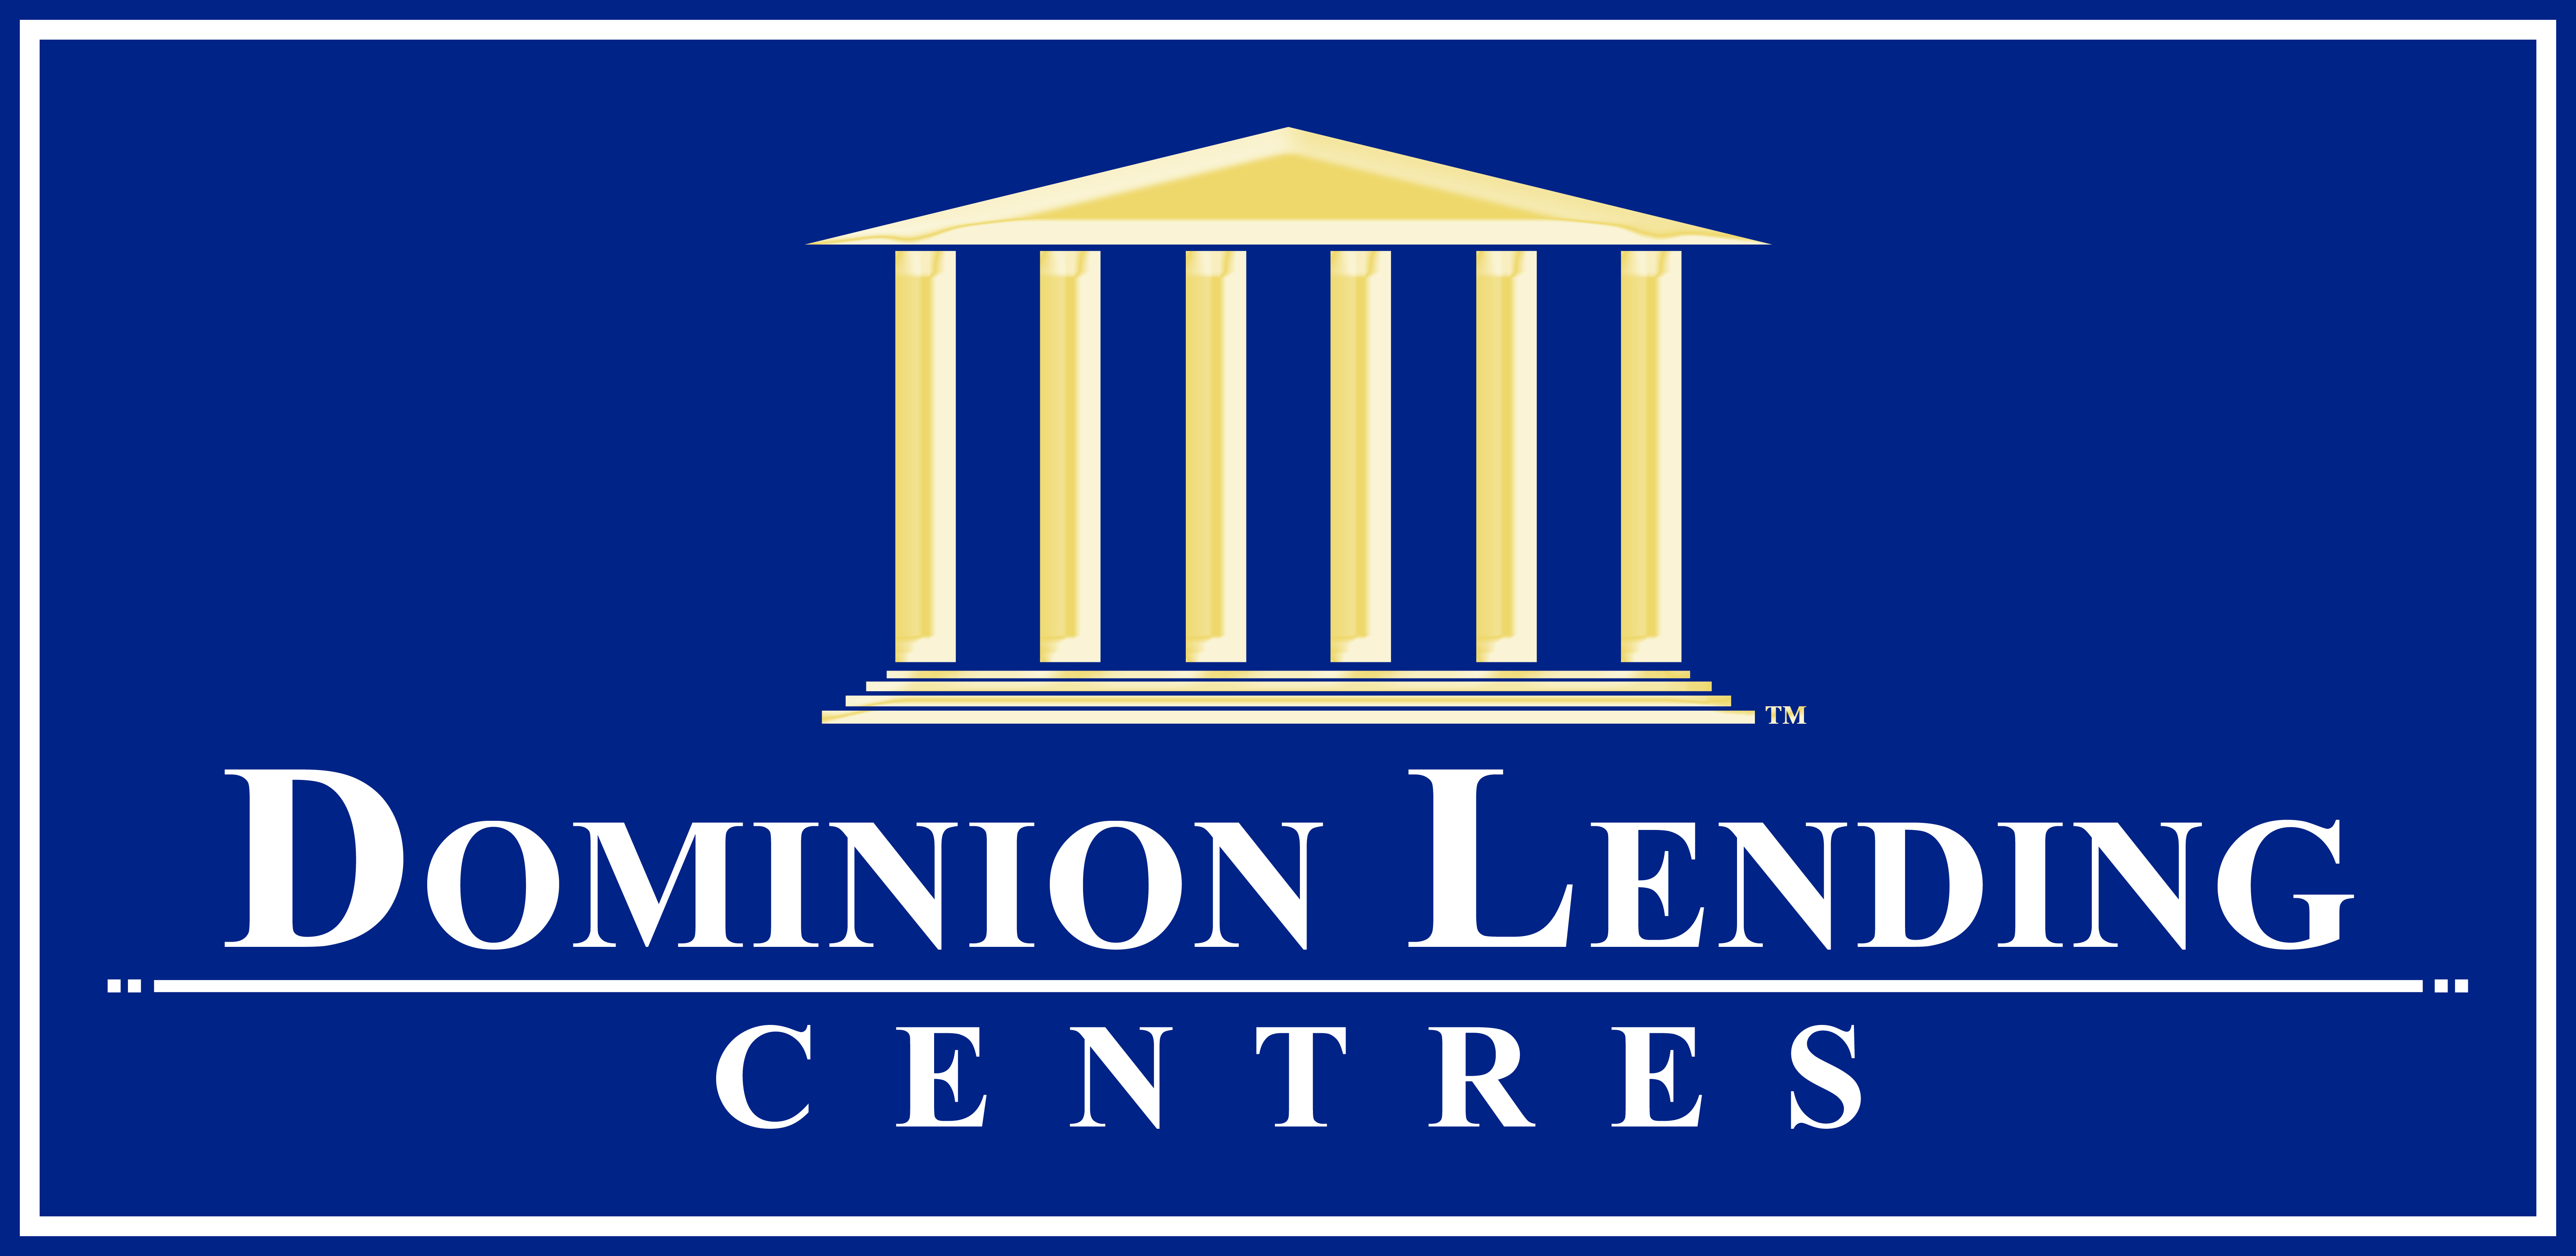 Dominion Lending Centres First Capital Inc